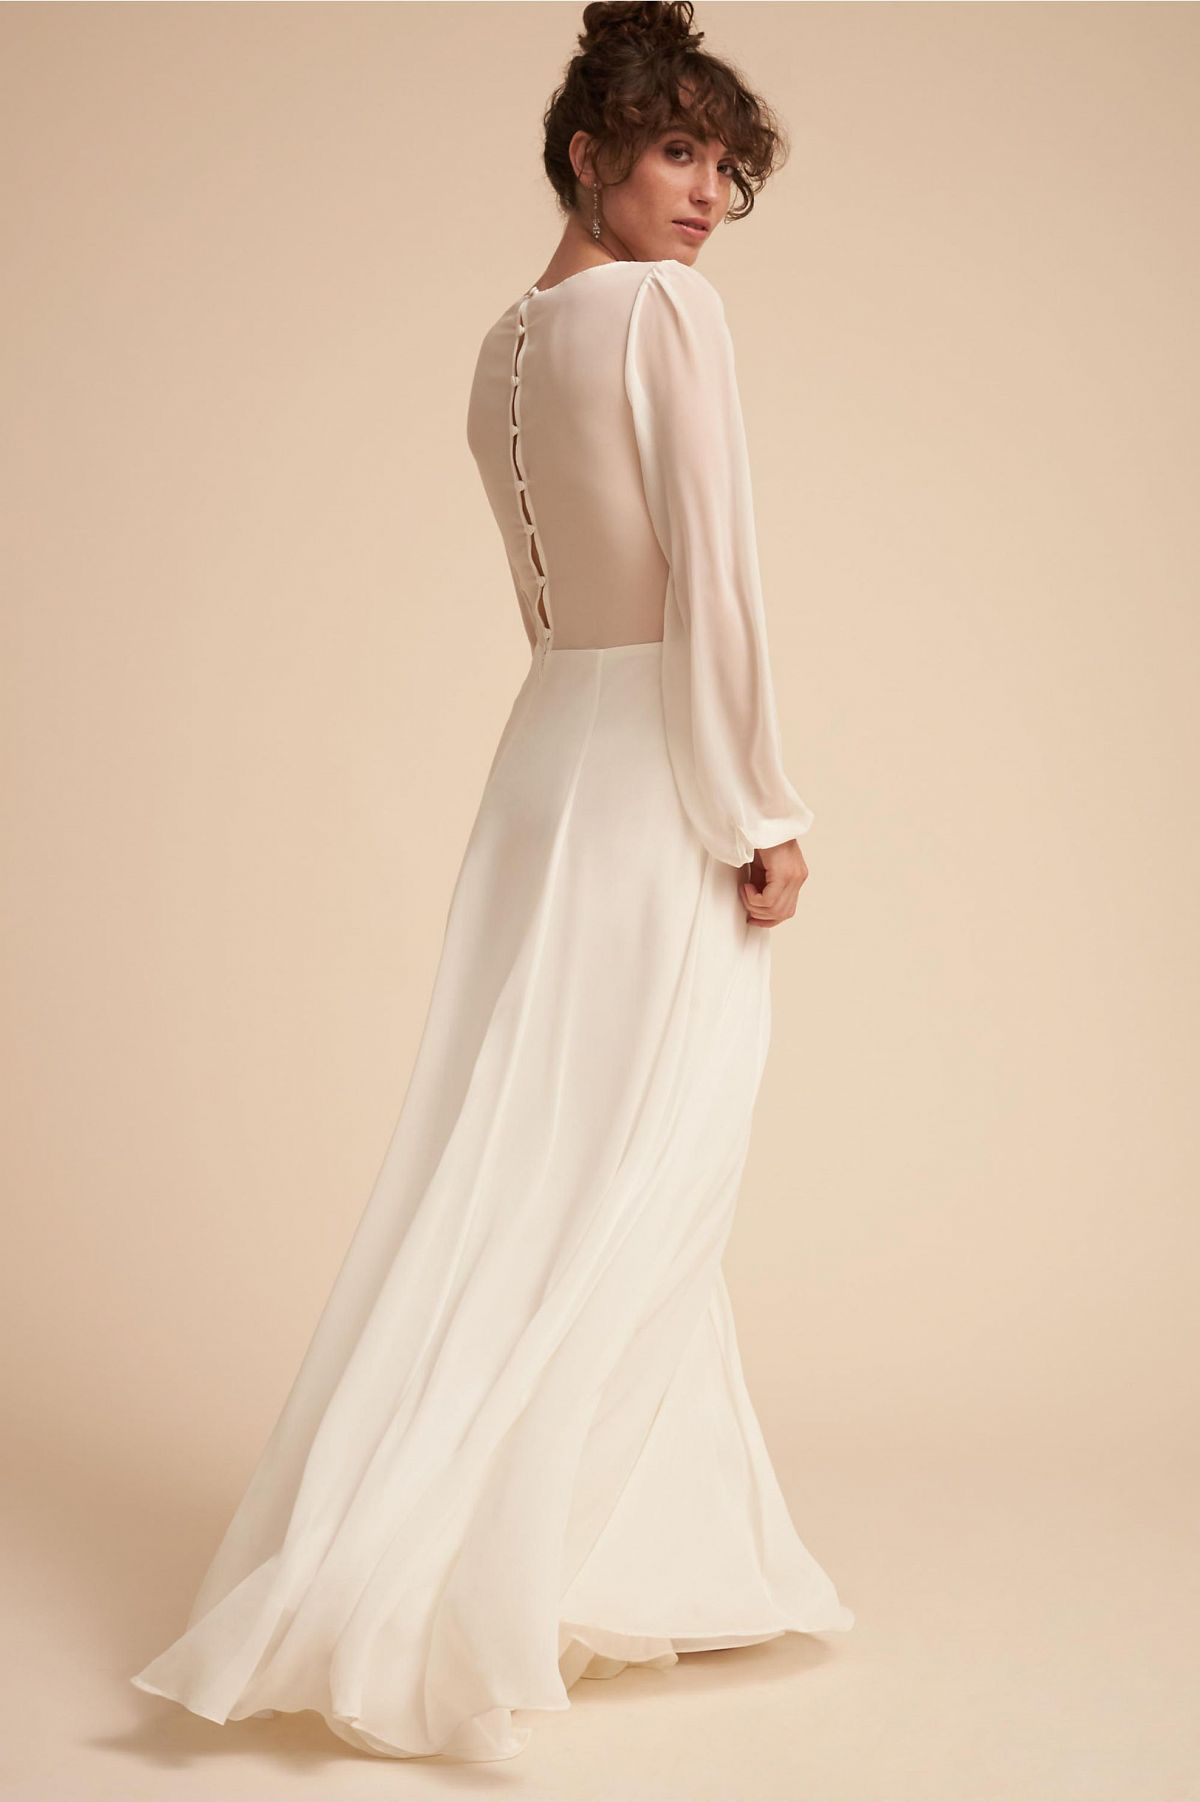 Romantic Wedding Dress With Billowing Cuffed Sleeves On A Plunging Surplice Bodice Cov Long Sleeve Bridal Gown Casual Wedding Dress Affordable Wedding Dresses [ 1802 x 1200 Pixel ]